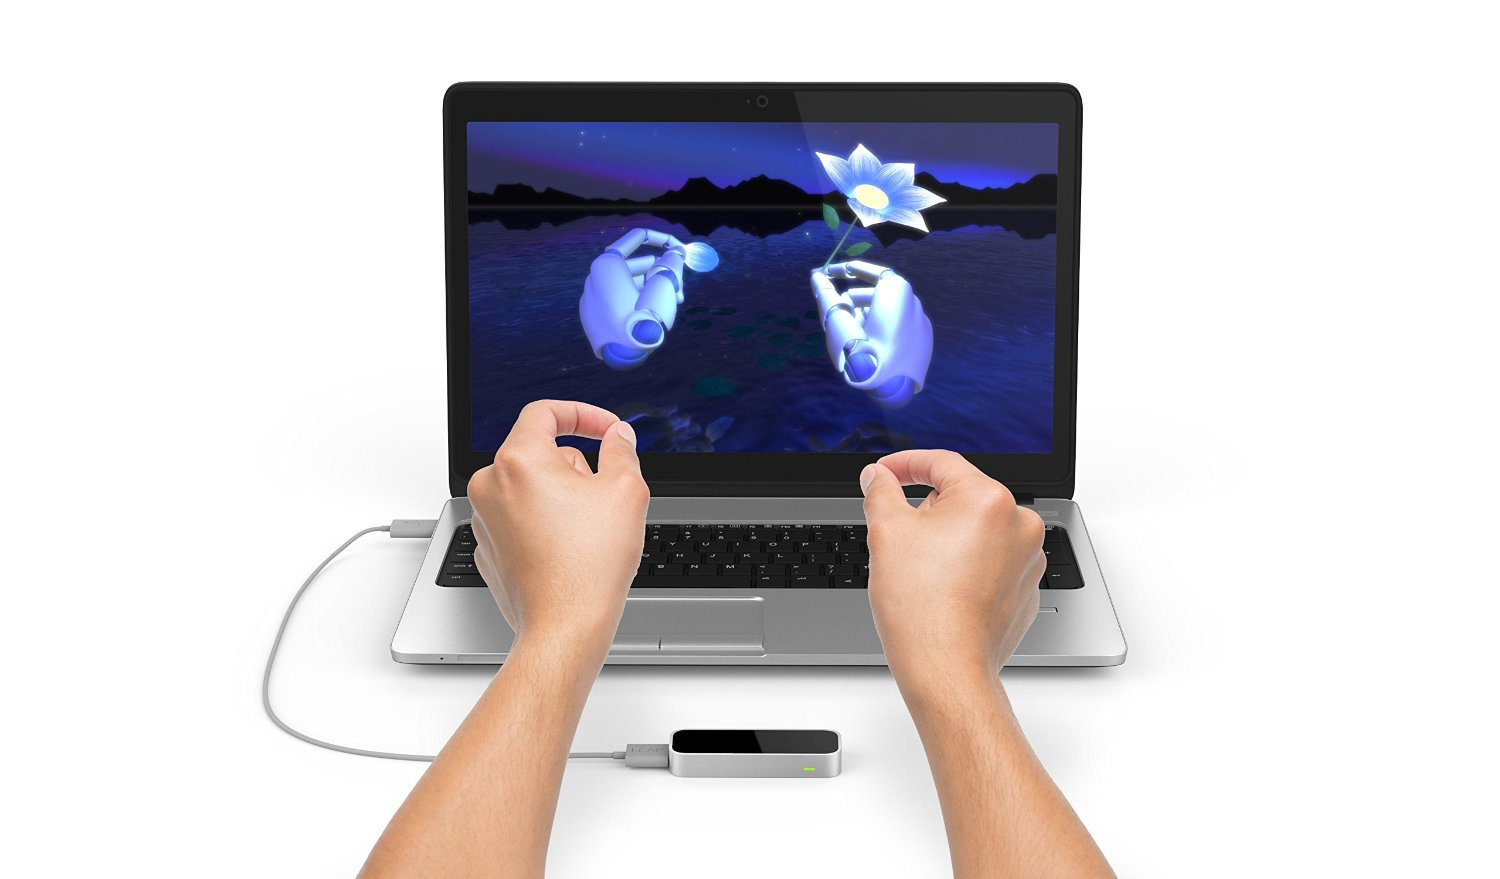 Leap Motion has announced a new platform for augmented reality tracking of hand movements